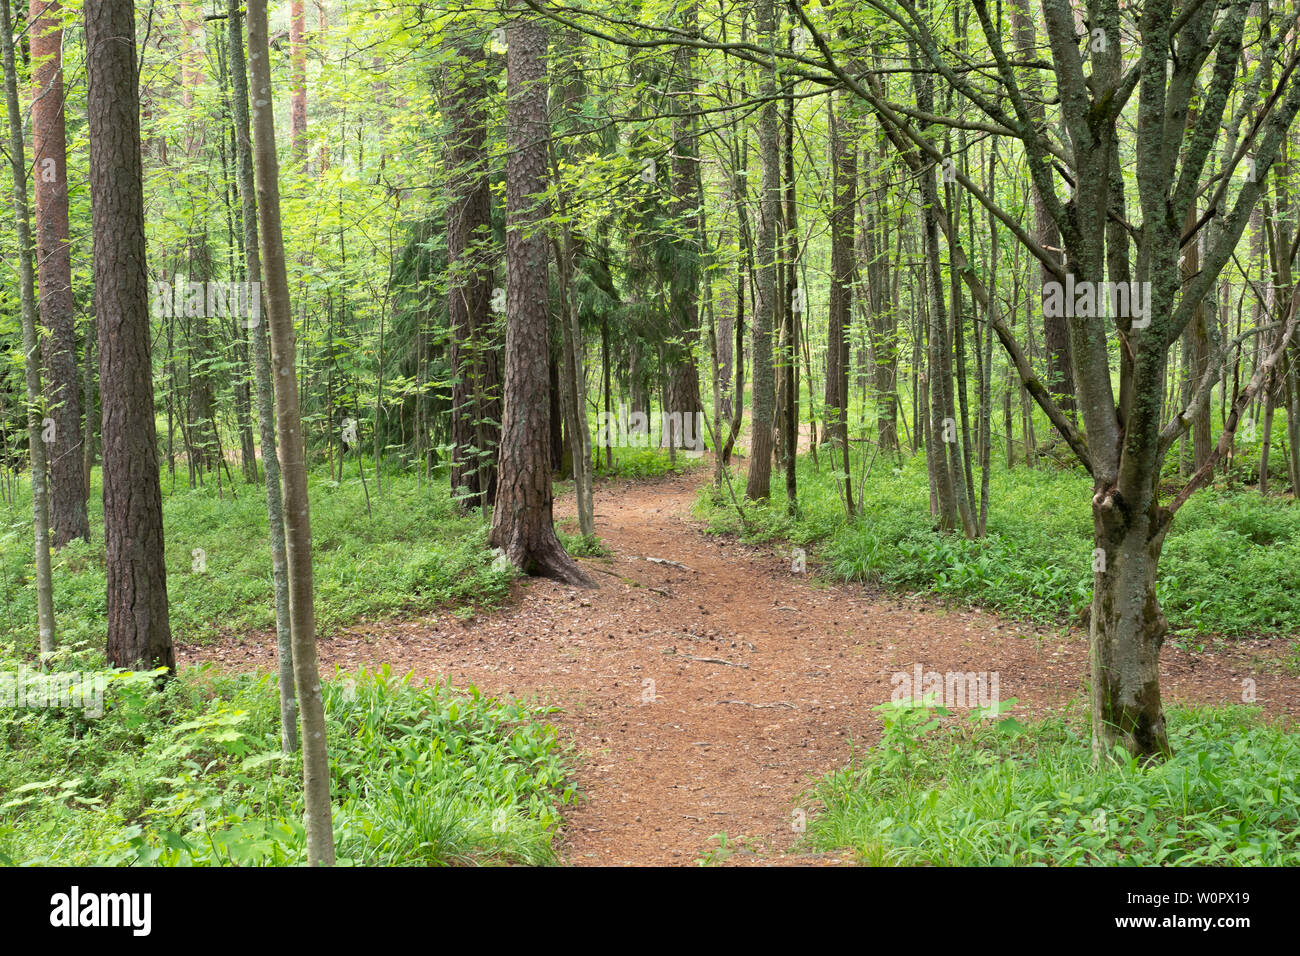 Jogging Paths in a Forest in Pispala Tampere Finland - Stock Image